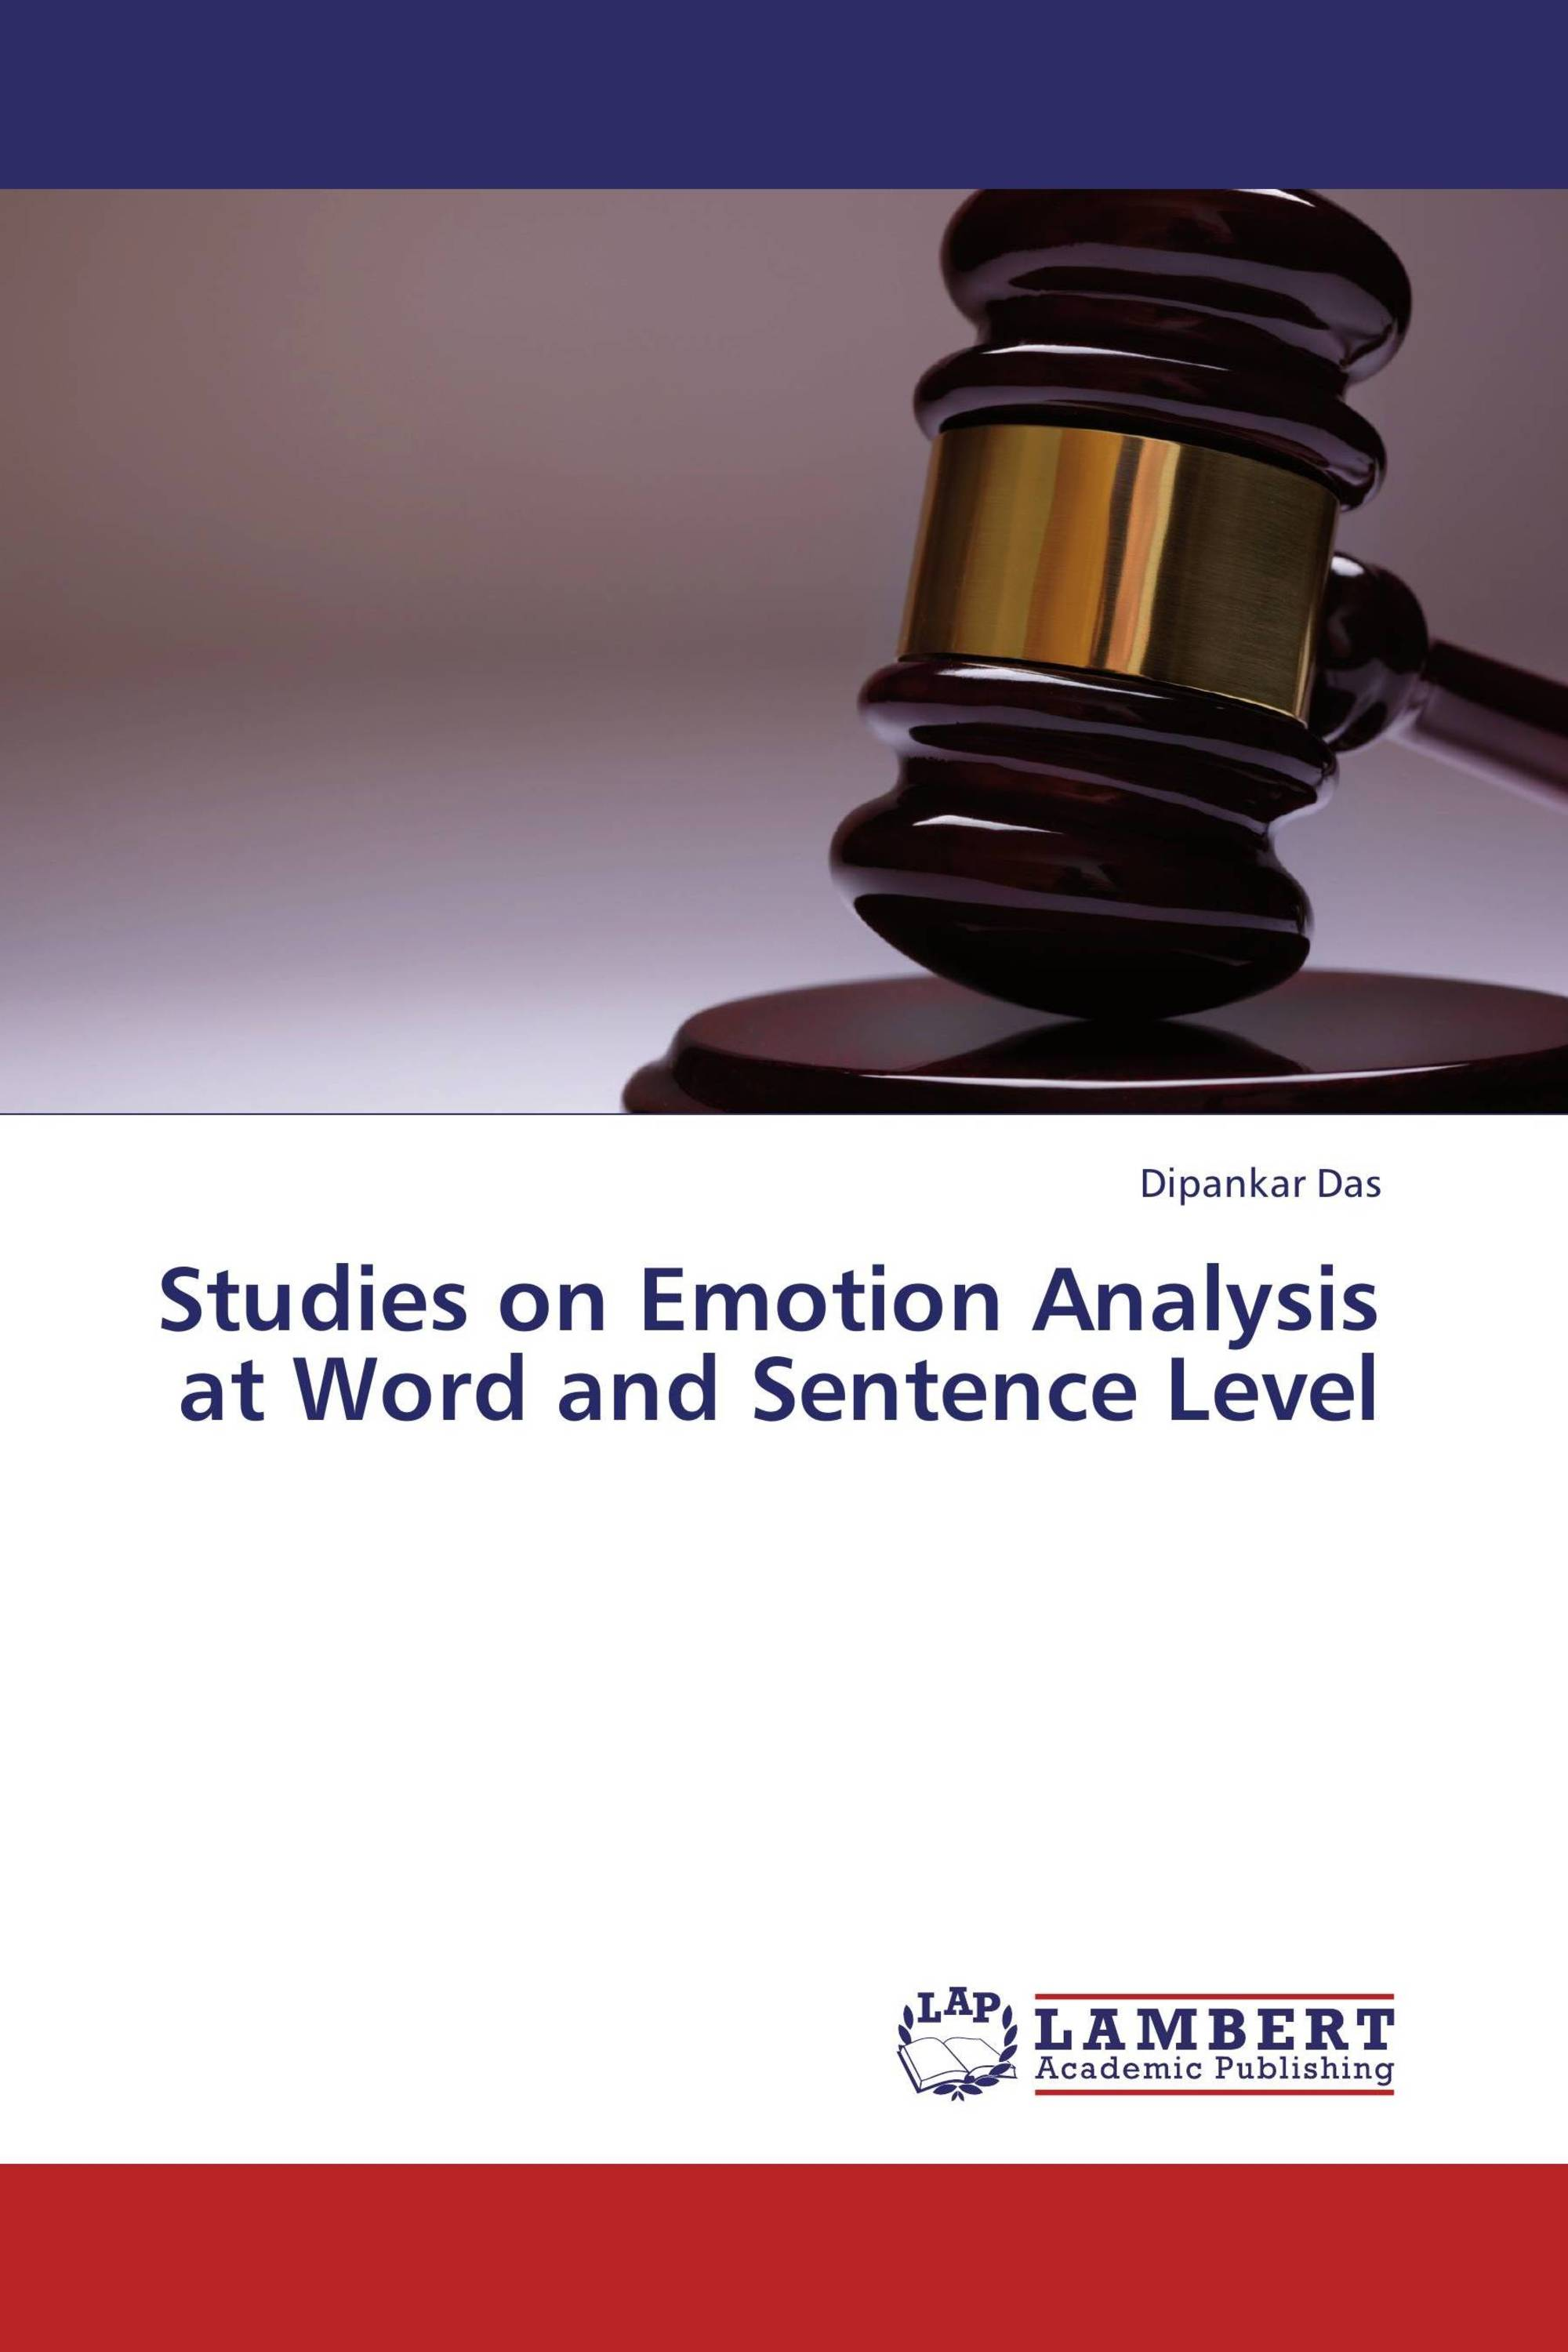 Studies on Emotion Analysis at Word and Sentence Level